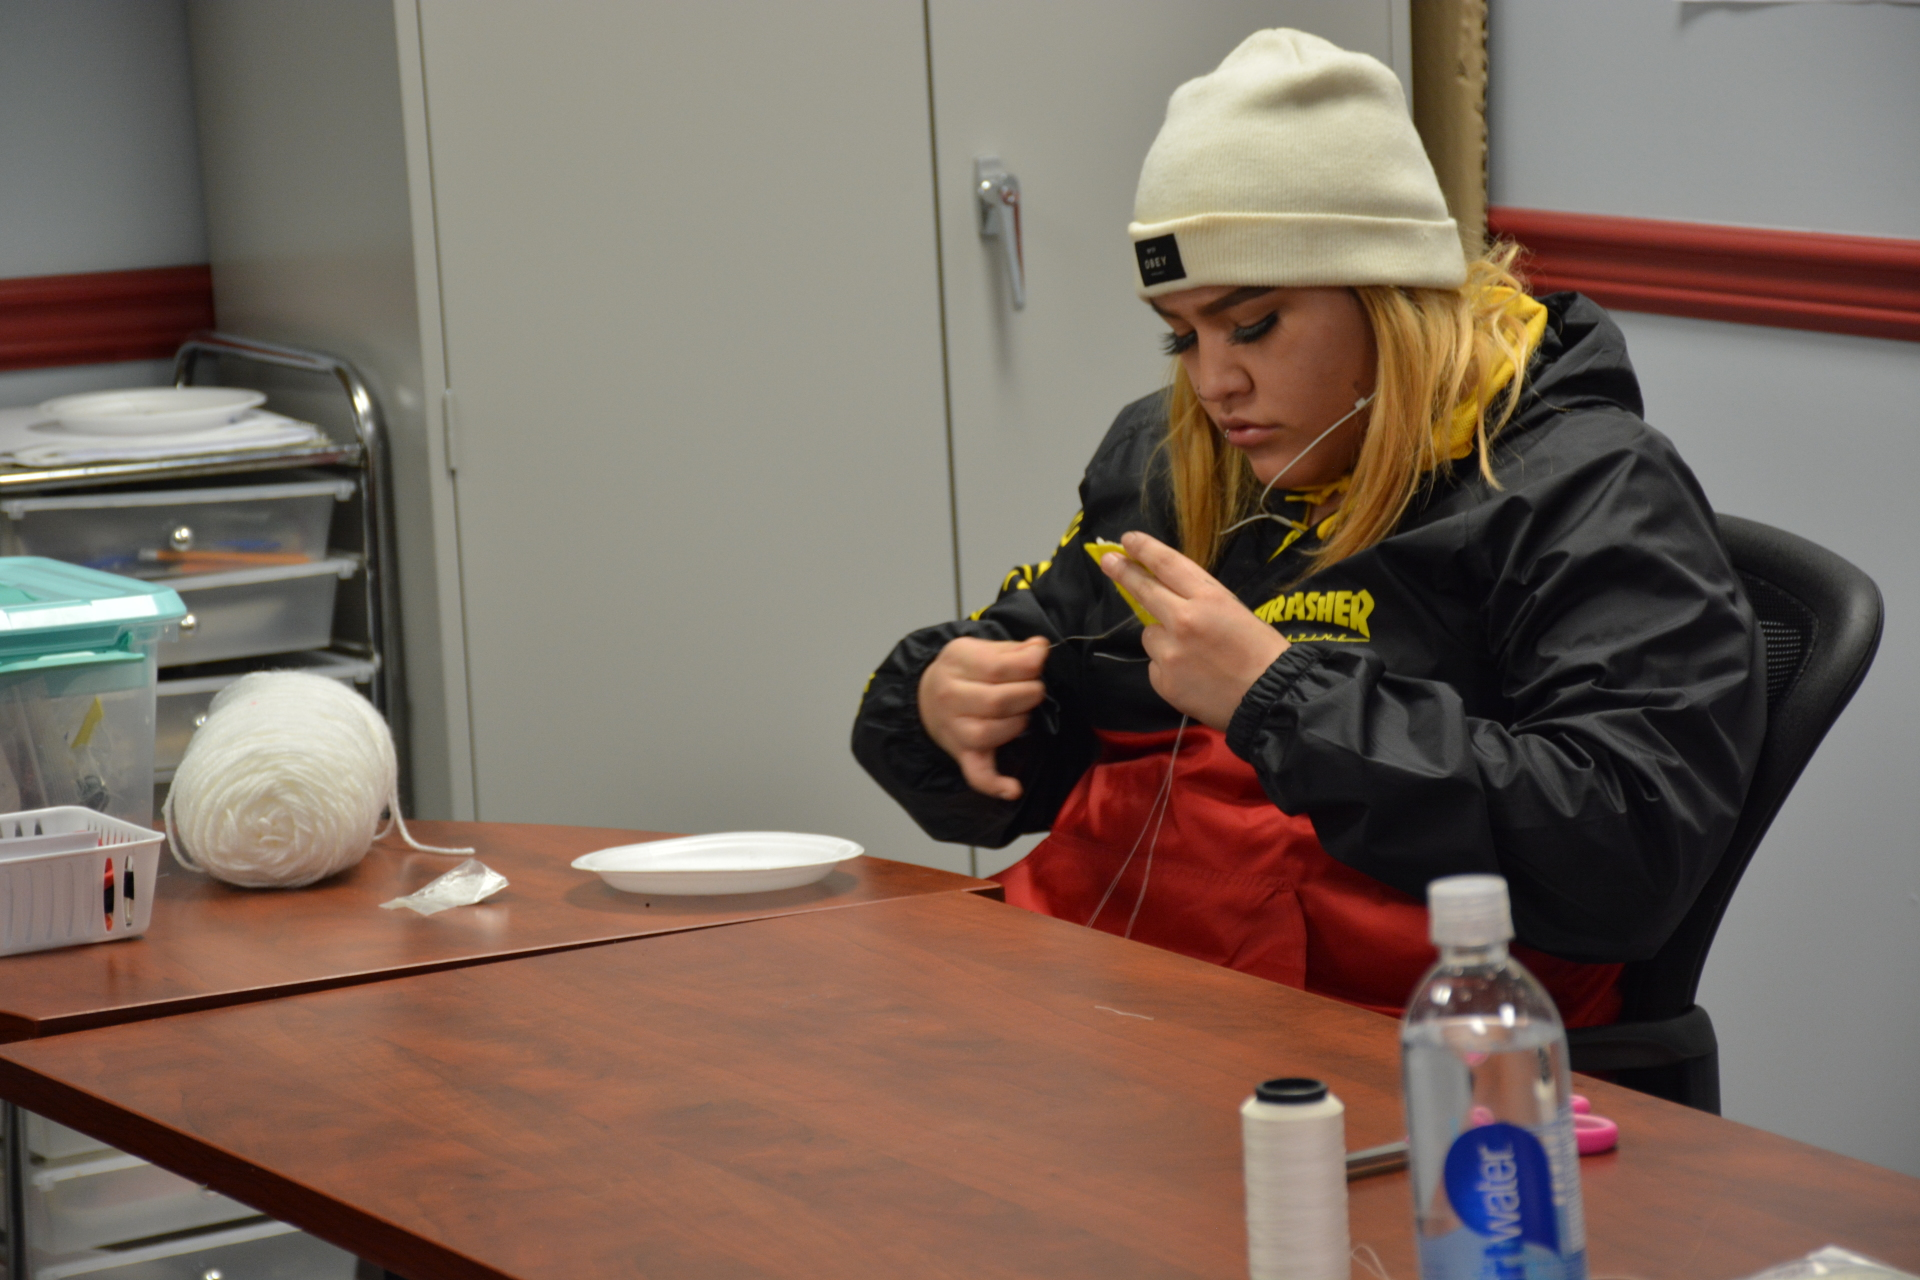 Student working on Bead work